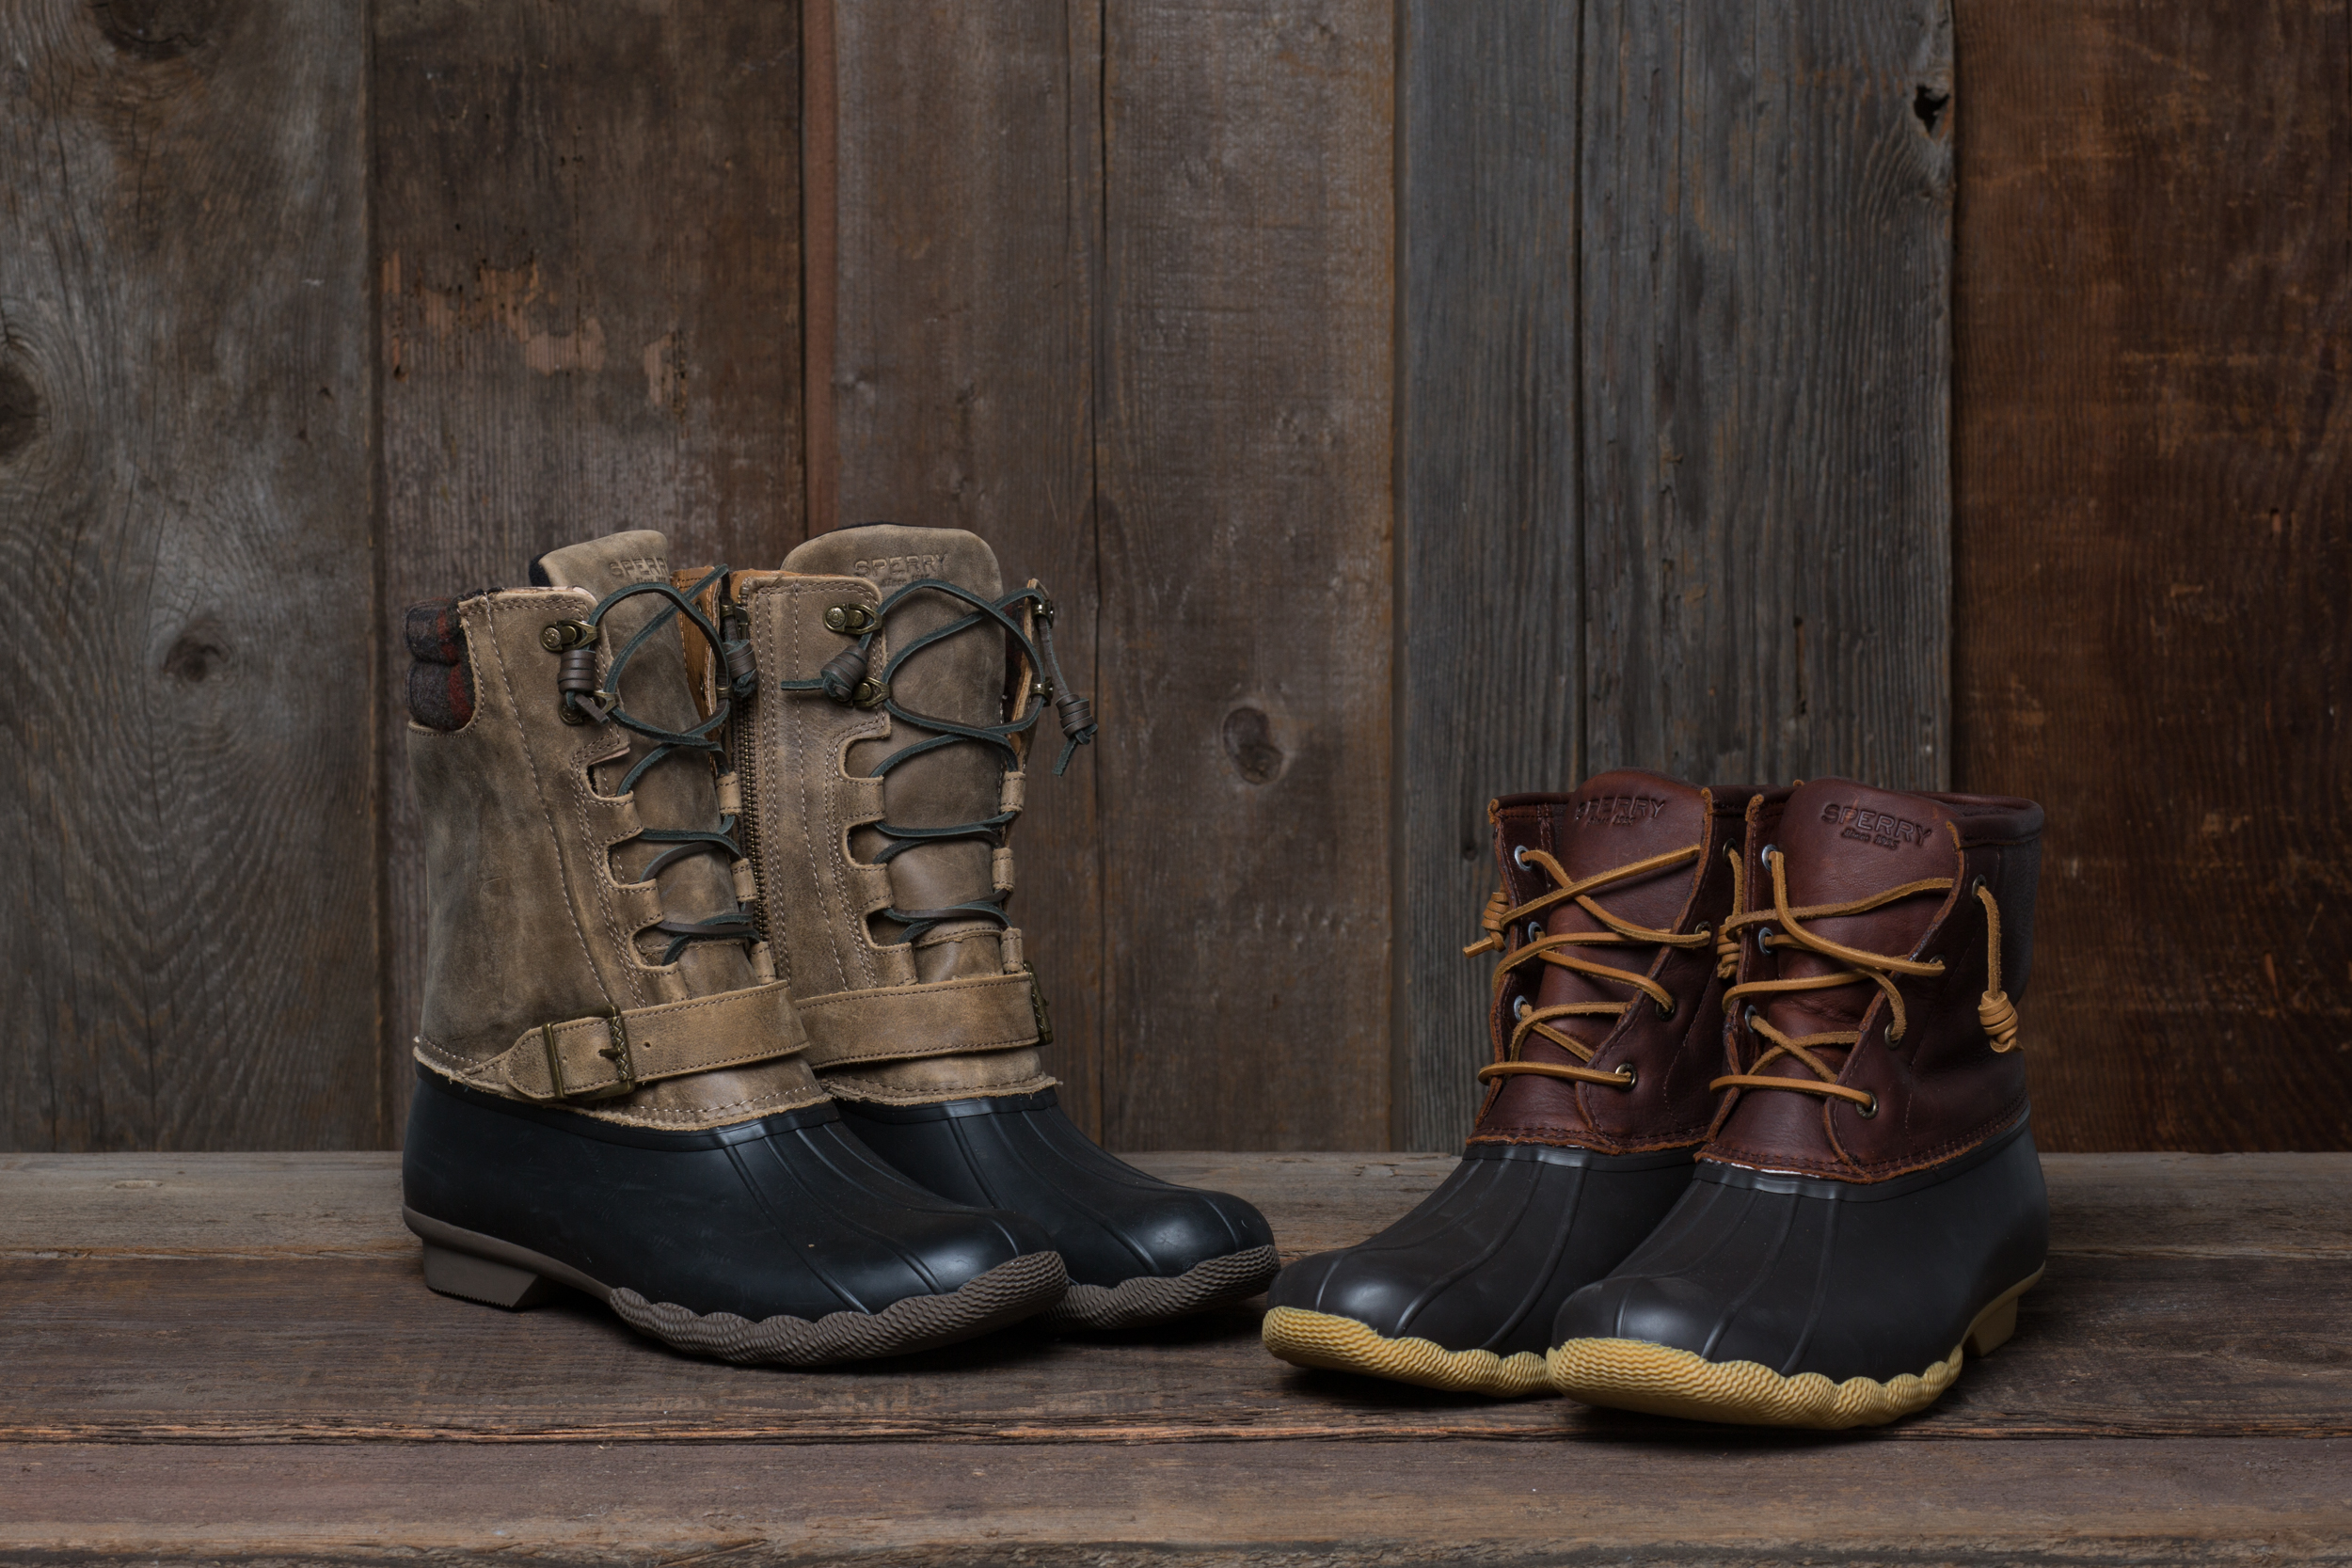 Still a low-profile boot easy to travel in, a higher shaft and leather outter make the the Saltwater Misty (left) a strong choice for burlier winter days. PHOTO: Maggie Kaiserman